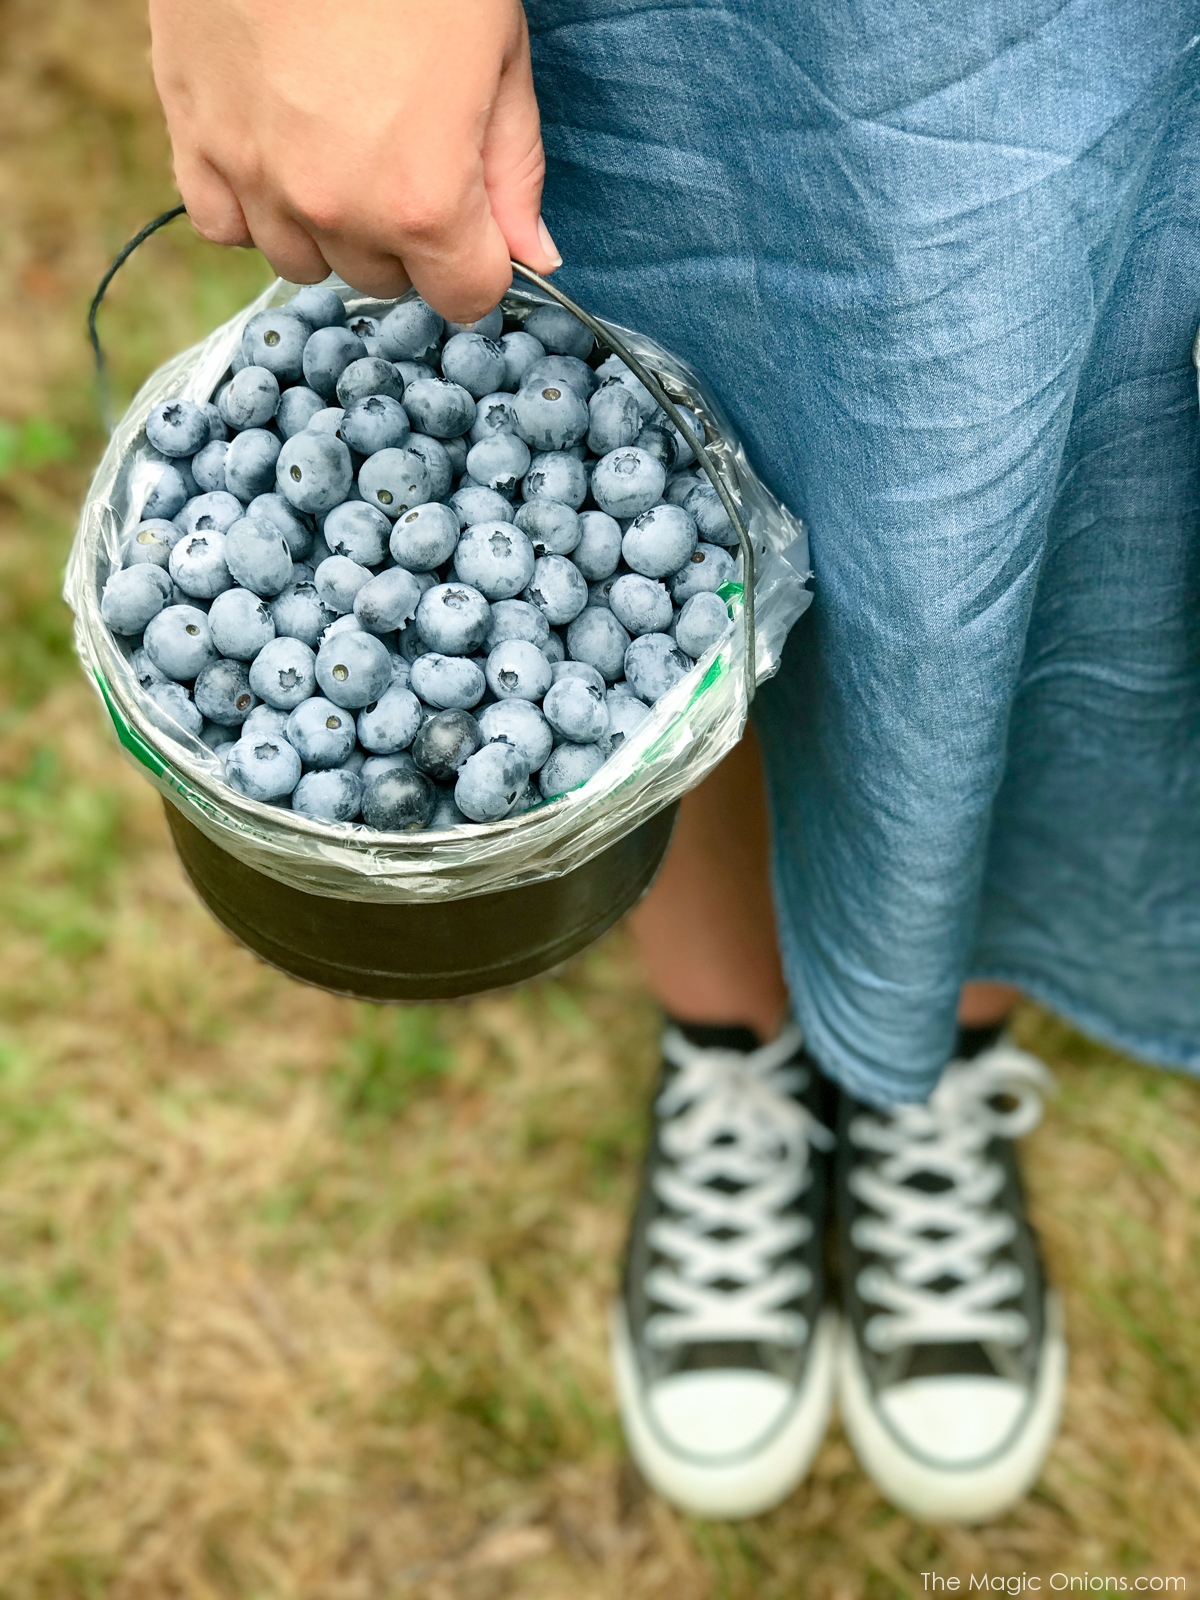 Picking Blueberries at Monadnock Berries, New Hampshire 7